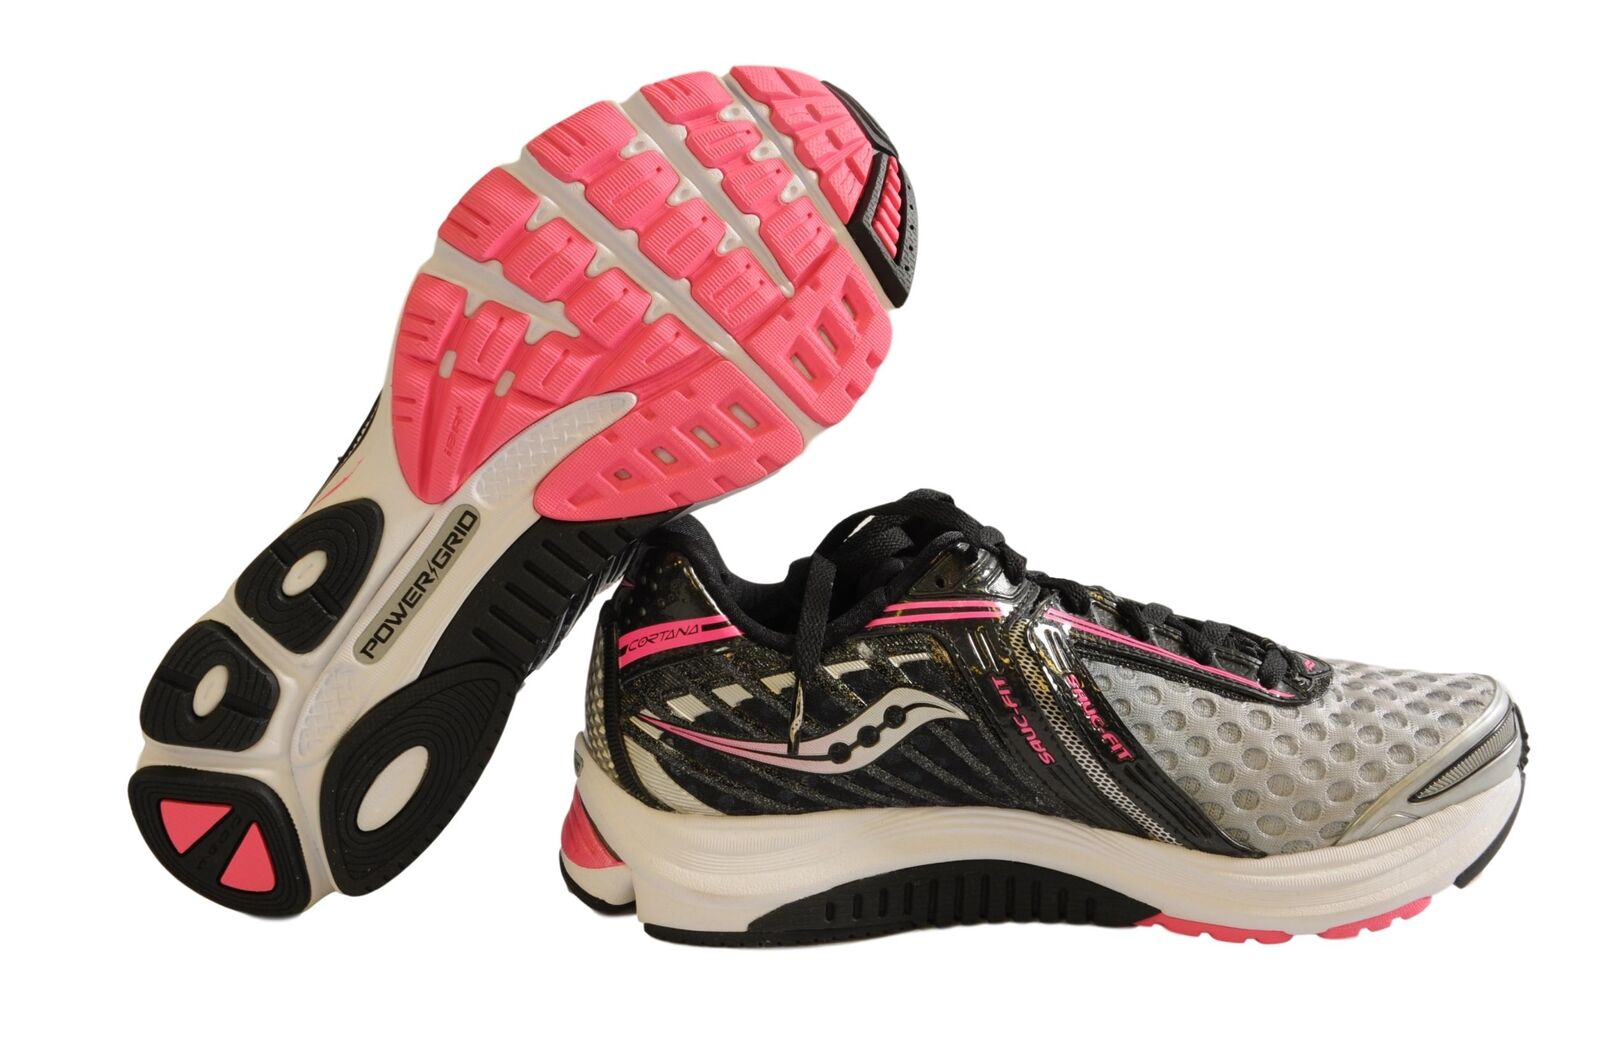 Saucony Powergrid Cortana Pro Damenschuhe Running Schuhes – UK 8 Pink – Pink 8 (: ) 82778d